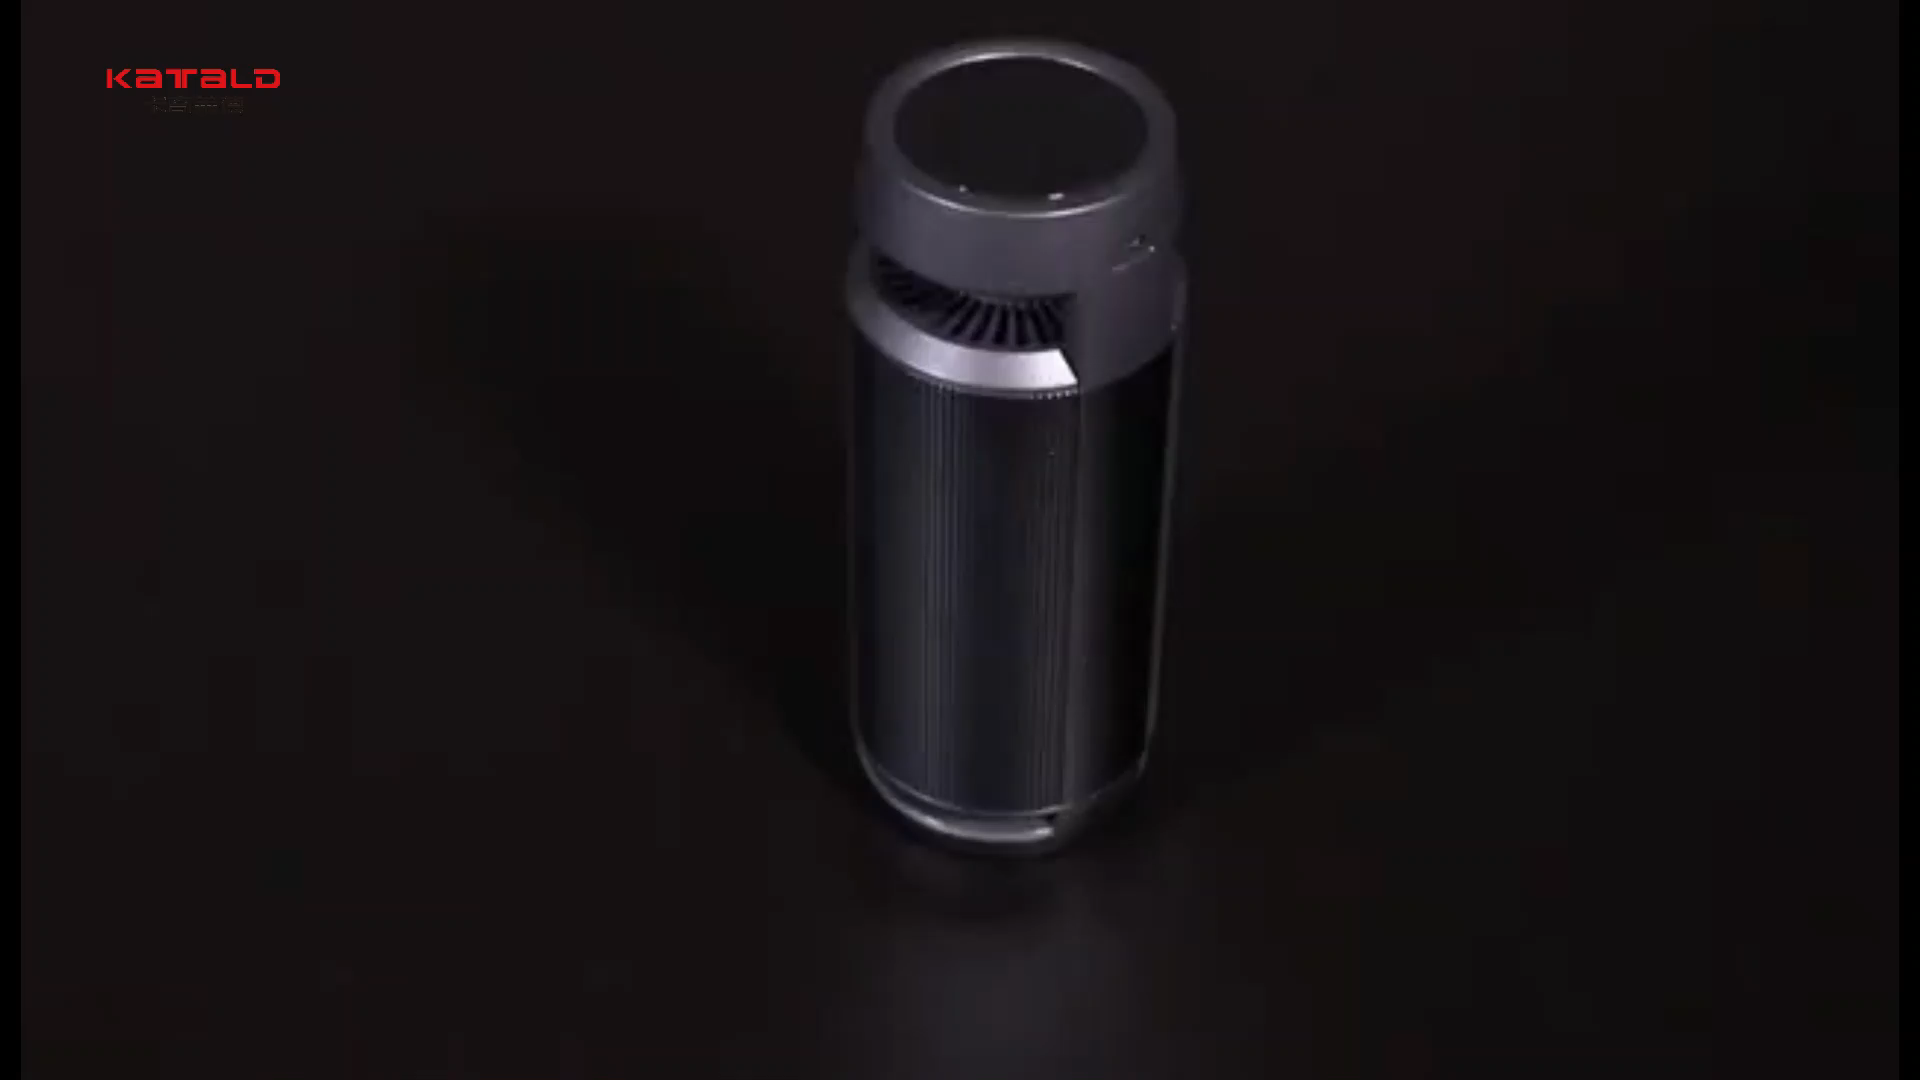 2020 Car air purifier for smokers with Hepa Filter Inductive purifier negative ion air cleaner china Led display pm 2.5 Sensor